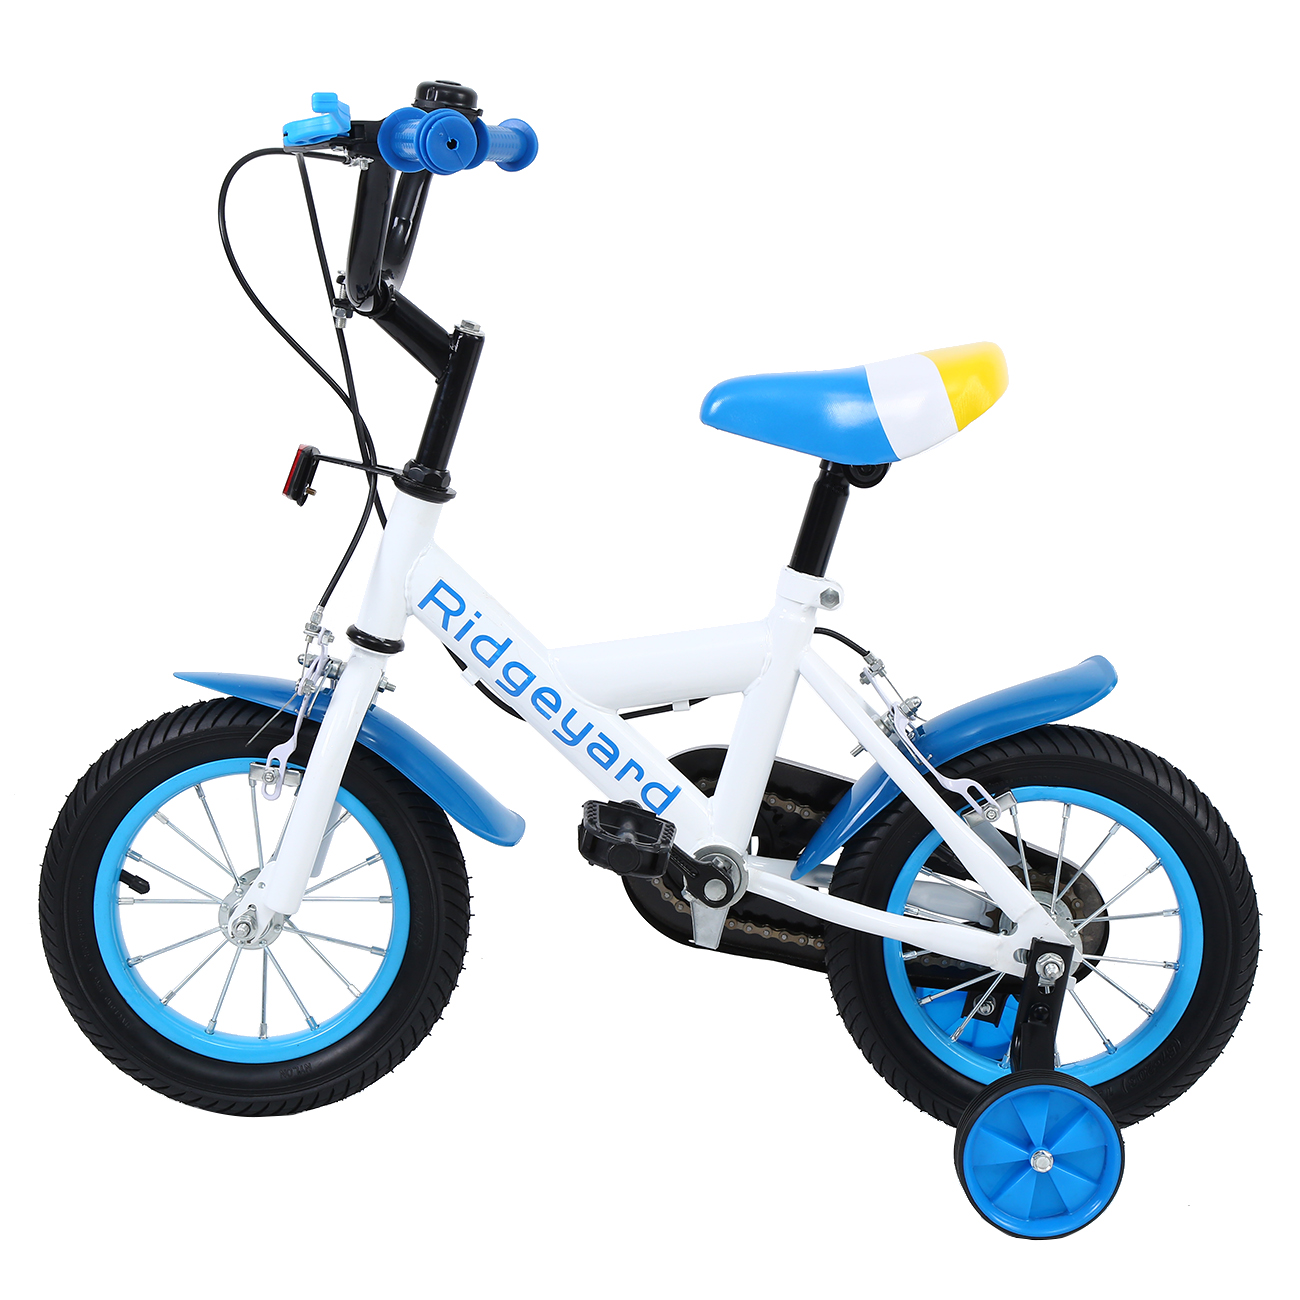 Yonntech  12 Inch Boys Girls Kids Bike Child Bicycle Age 1-5 Years W/ Training Wheel